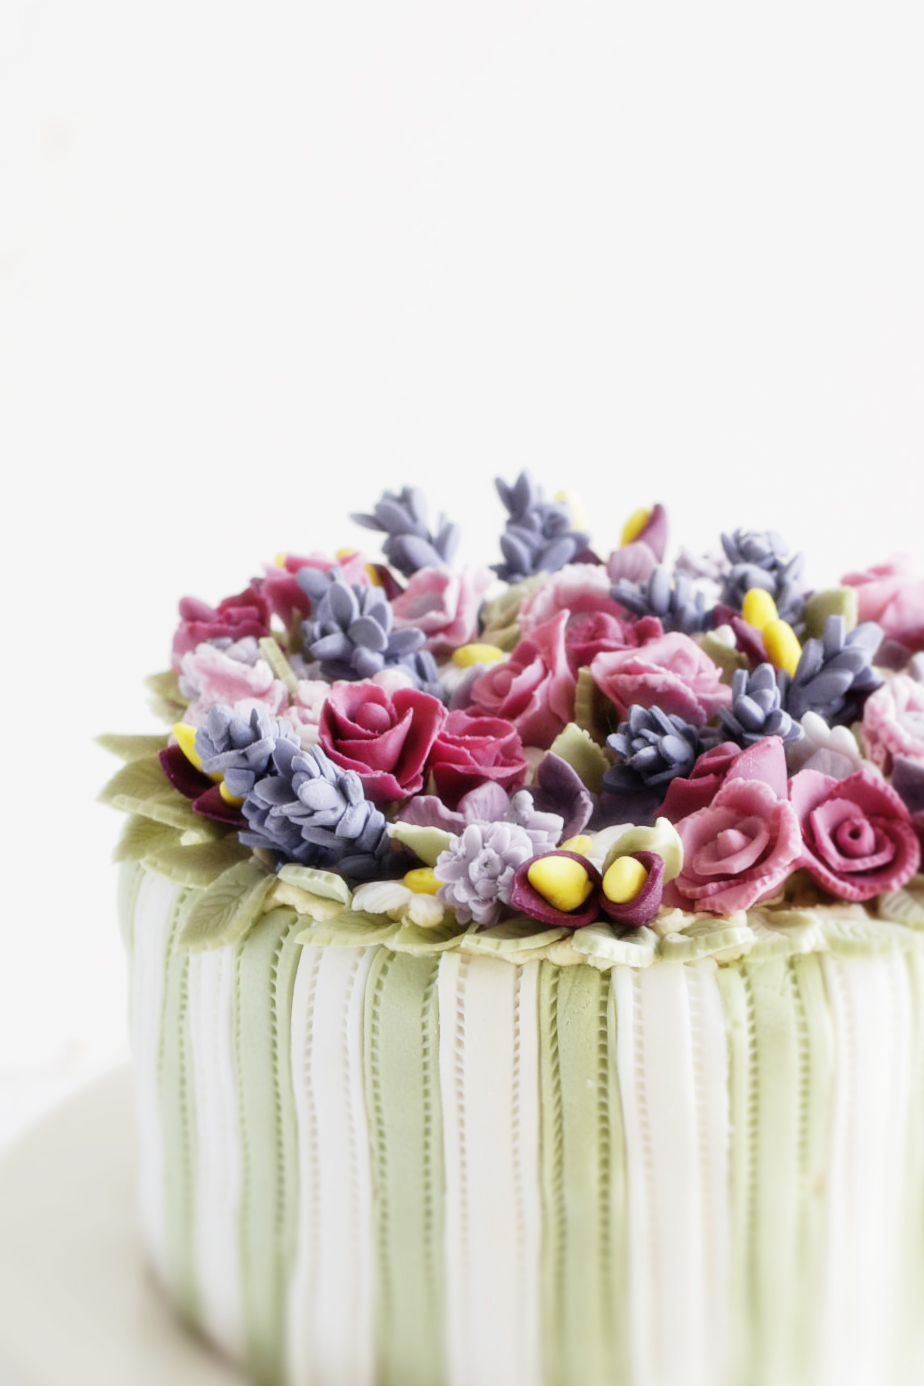 Vintage cake with flowers